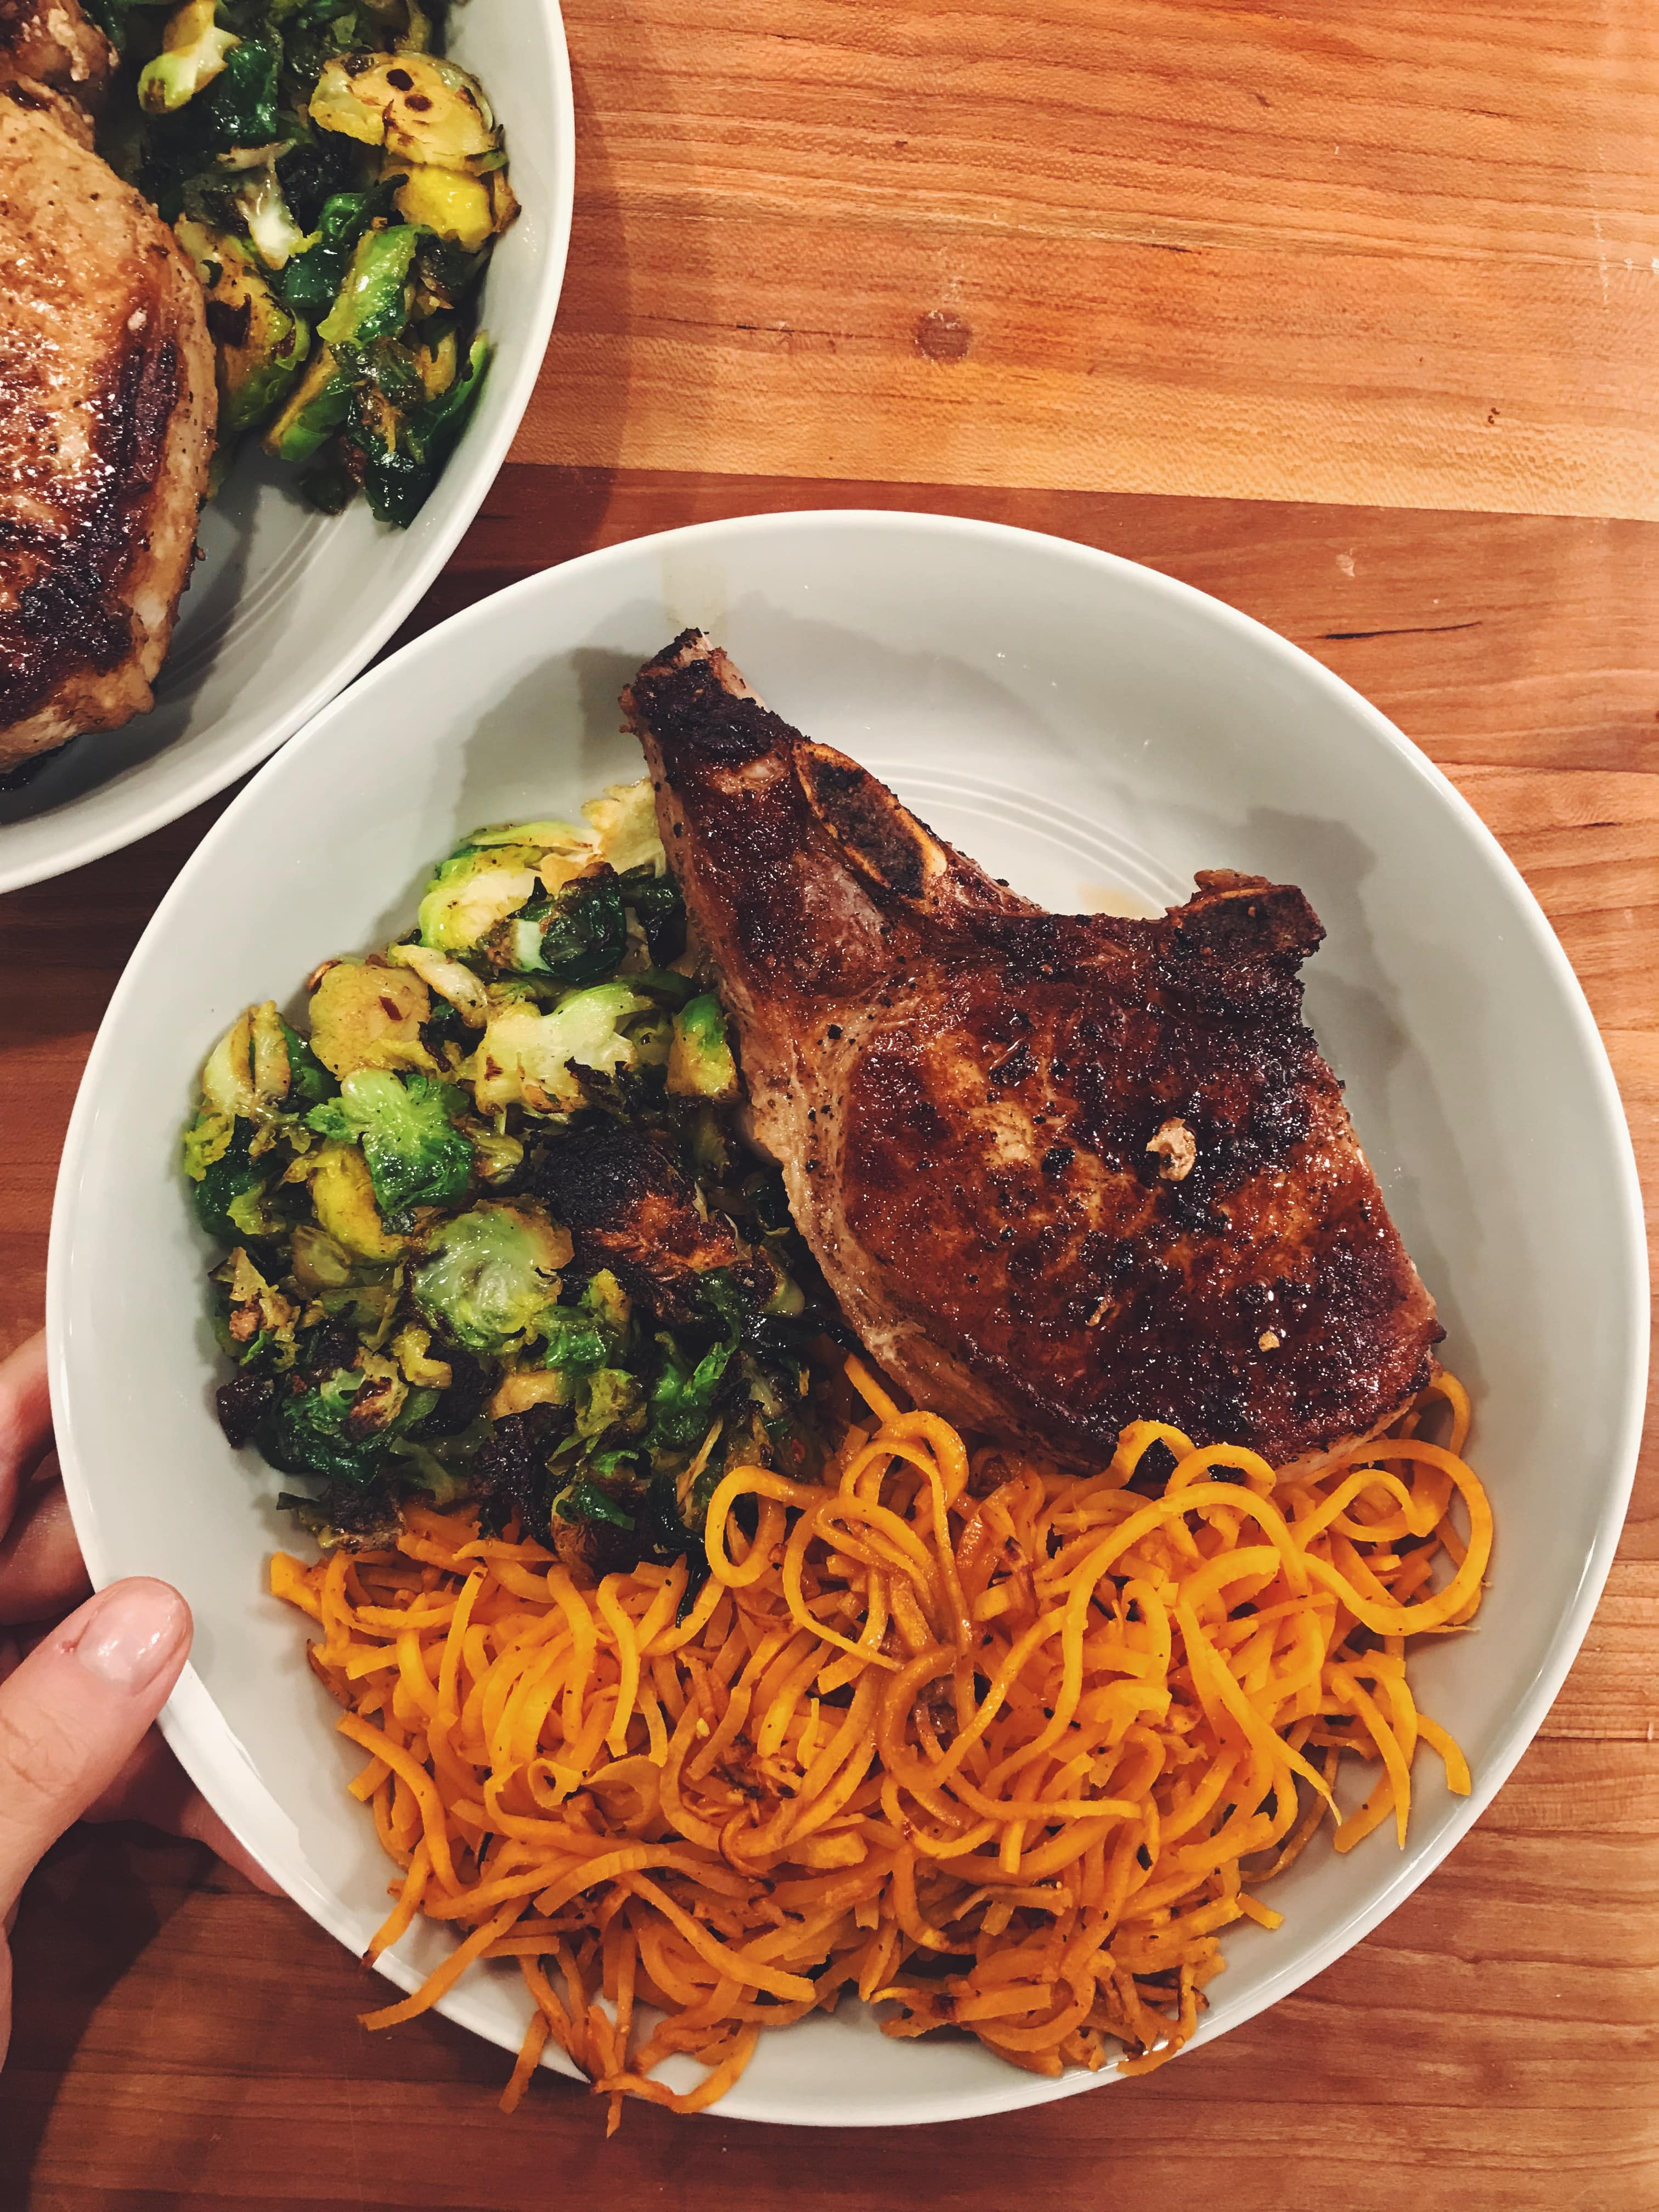 Crispy Pork Chops with Spiralized Sweet Potatoes and Charred Brussels Sprouts